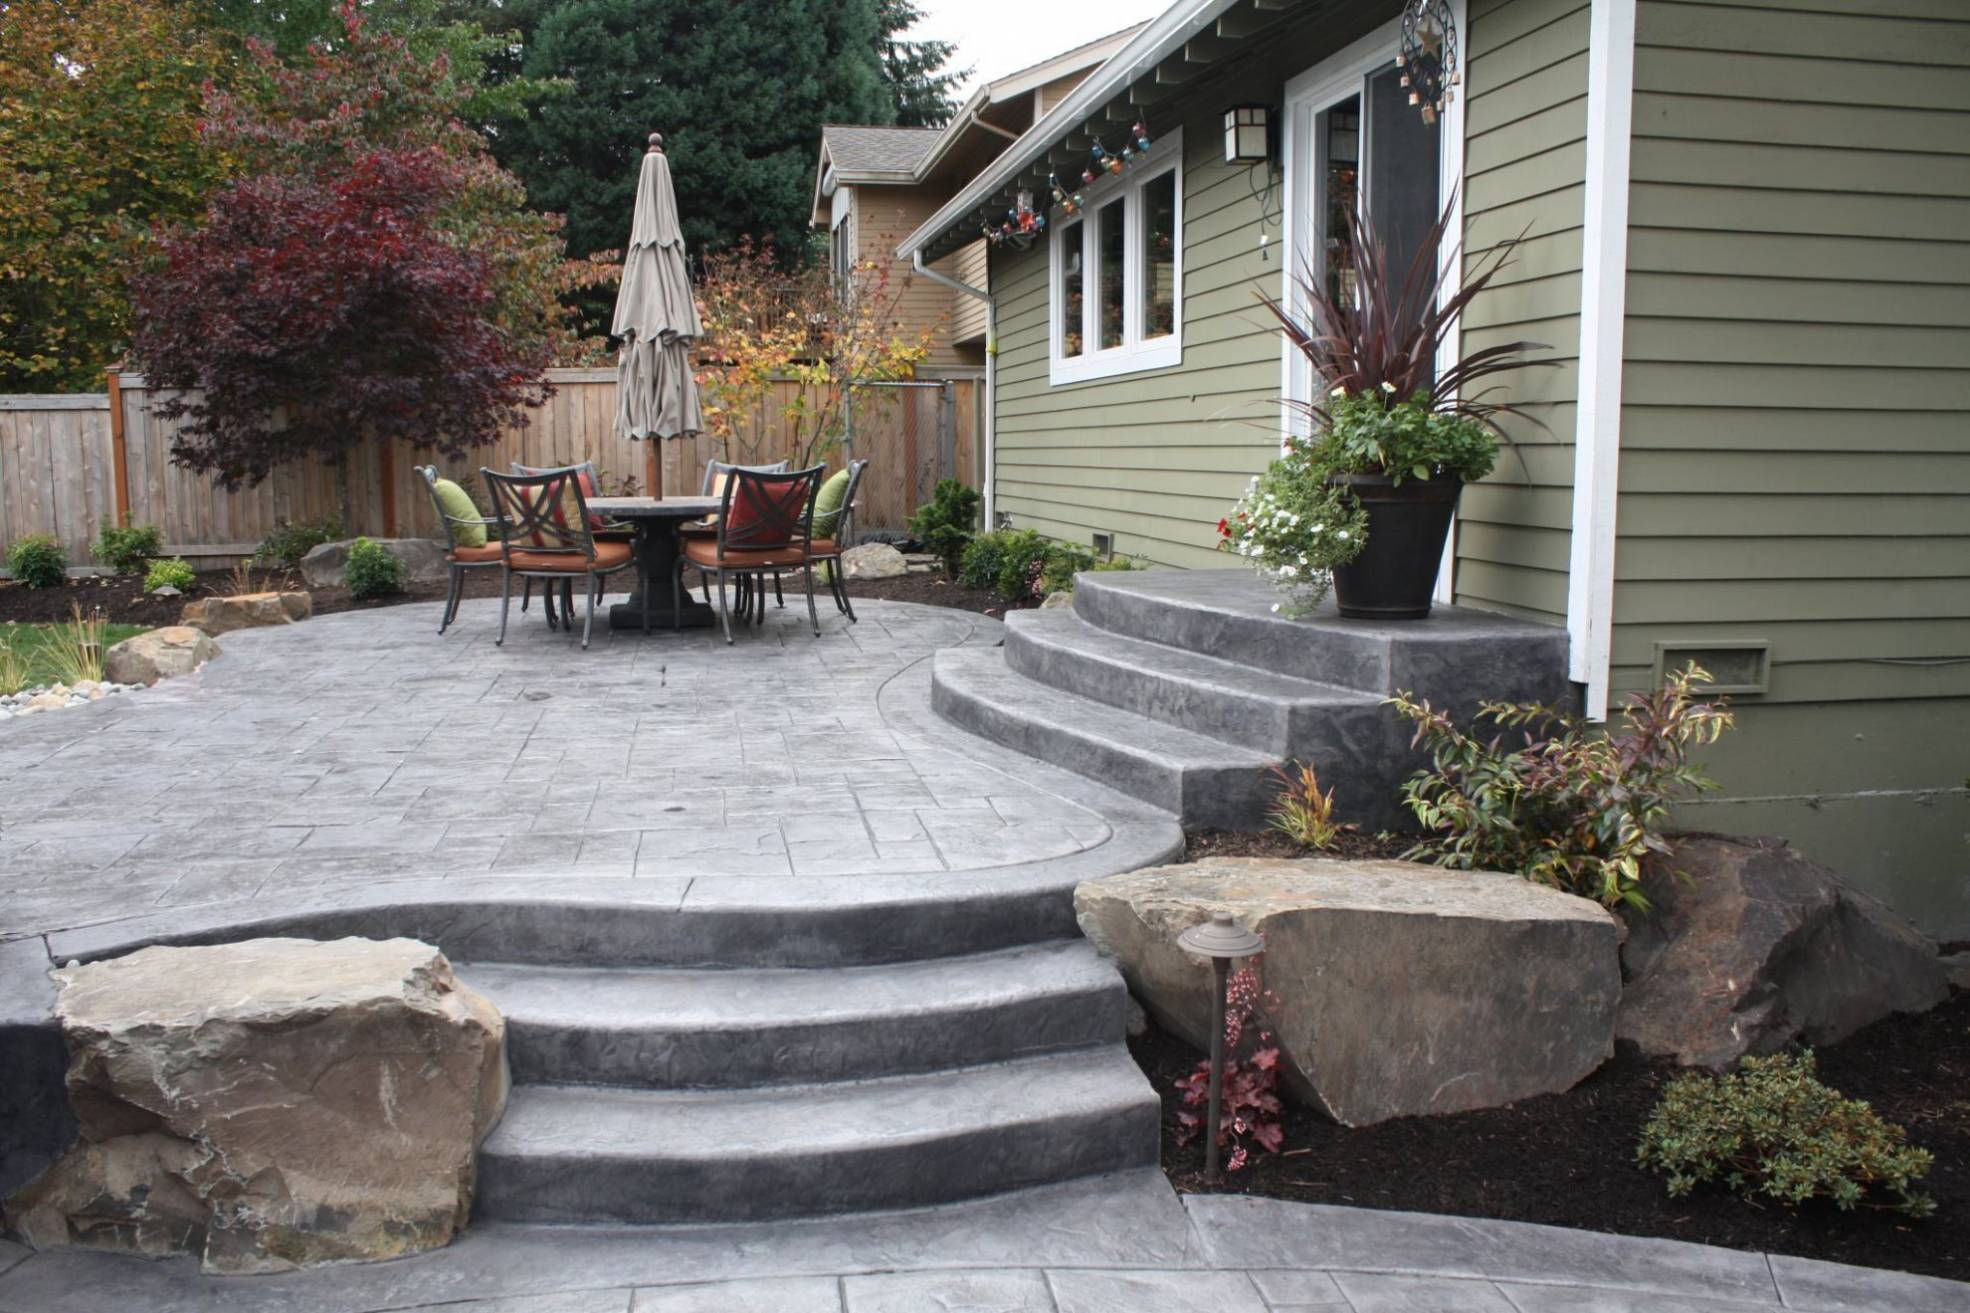 patios designs patio slabs cement patio concrete patio designs images